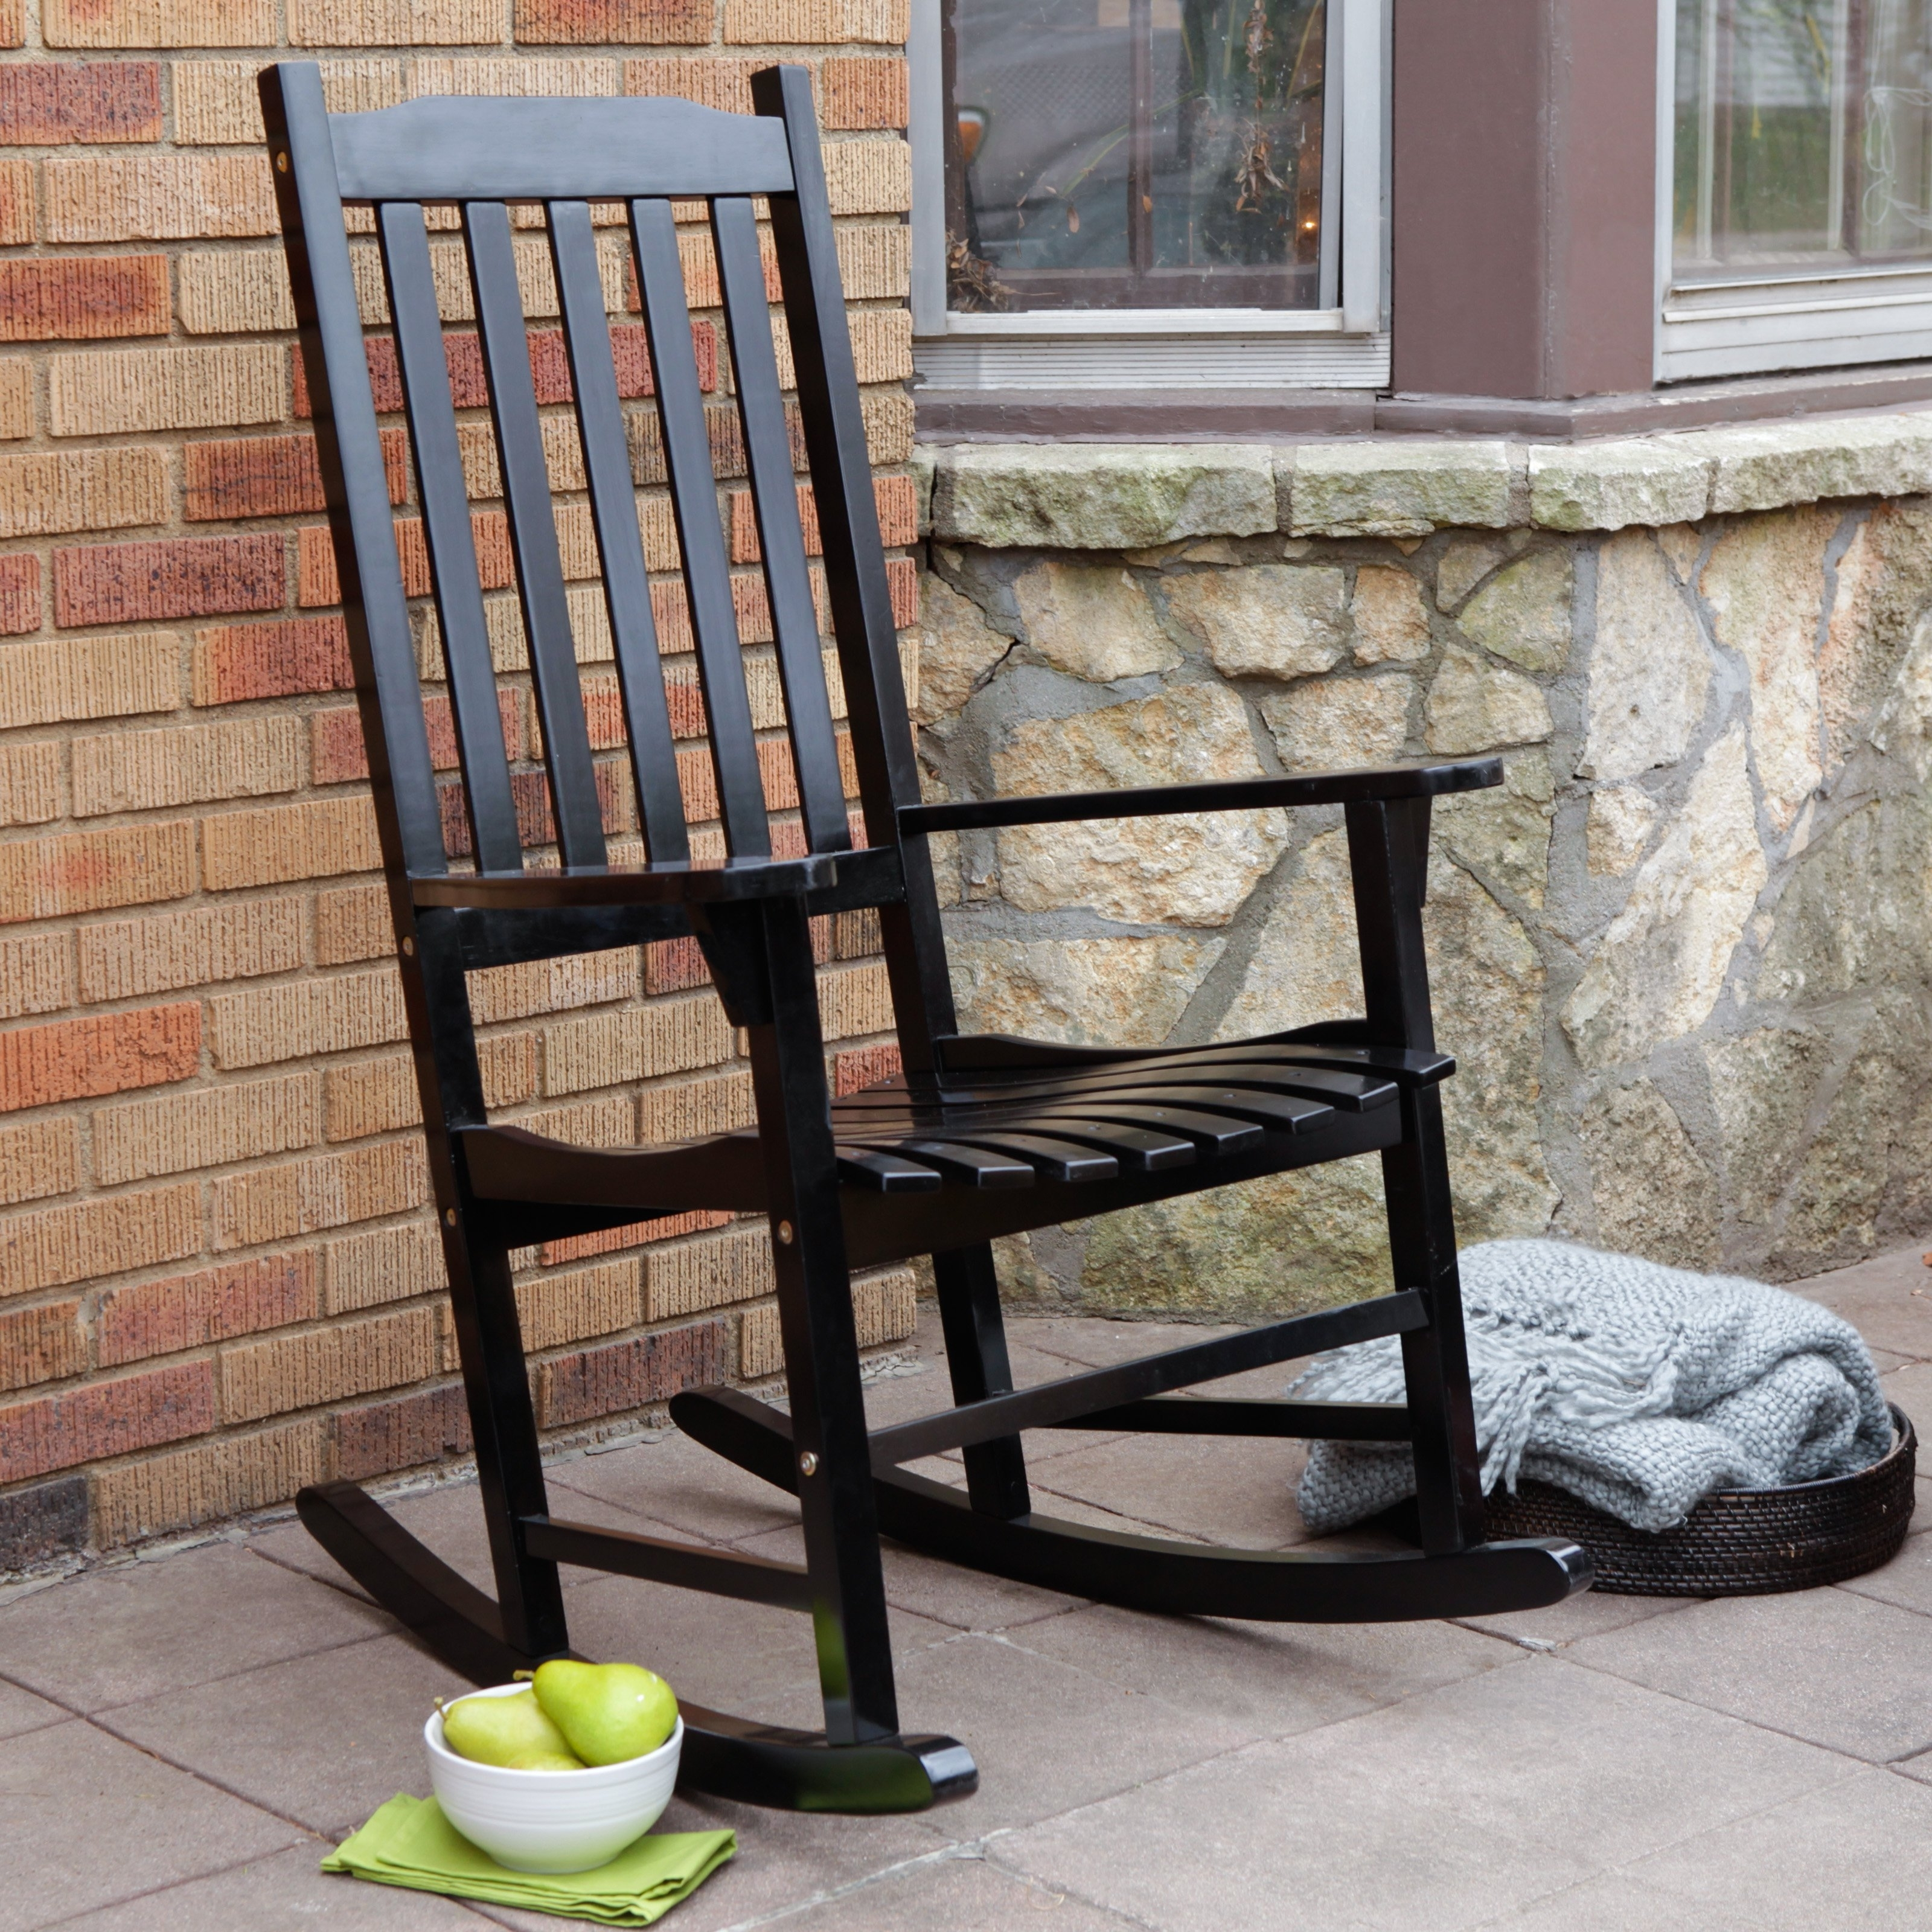 Most Recent Popularity Gaining Outdoor Rocking Chairs – Carehomedecor Throughout Unique Outdoor Rocking Chairs (View 11 of 20)